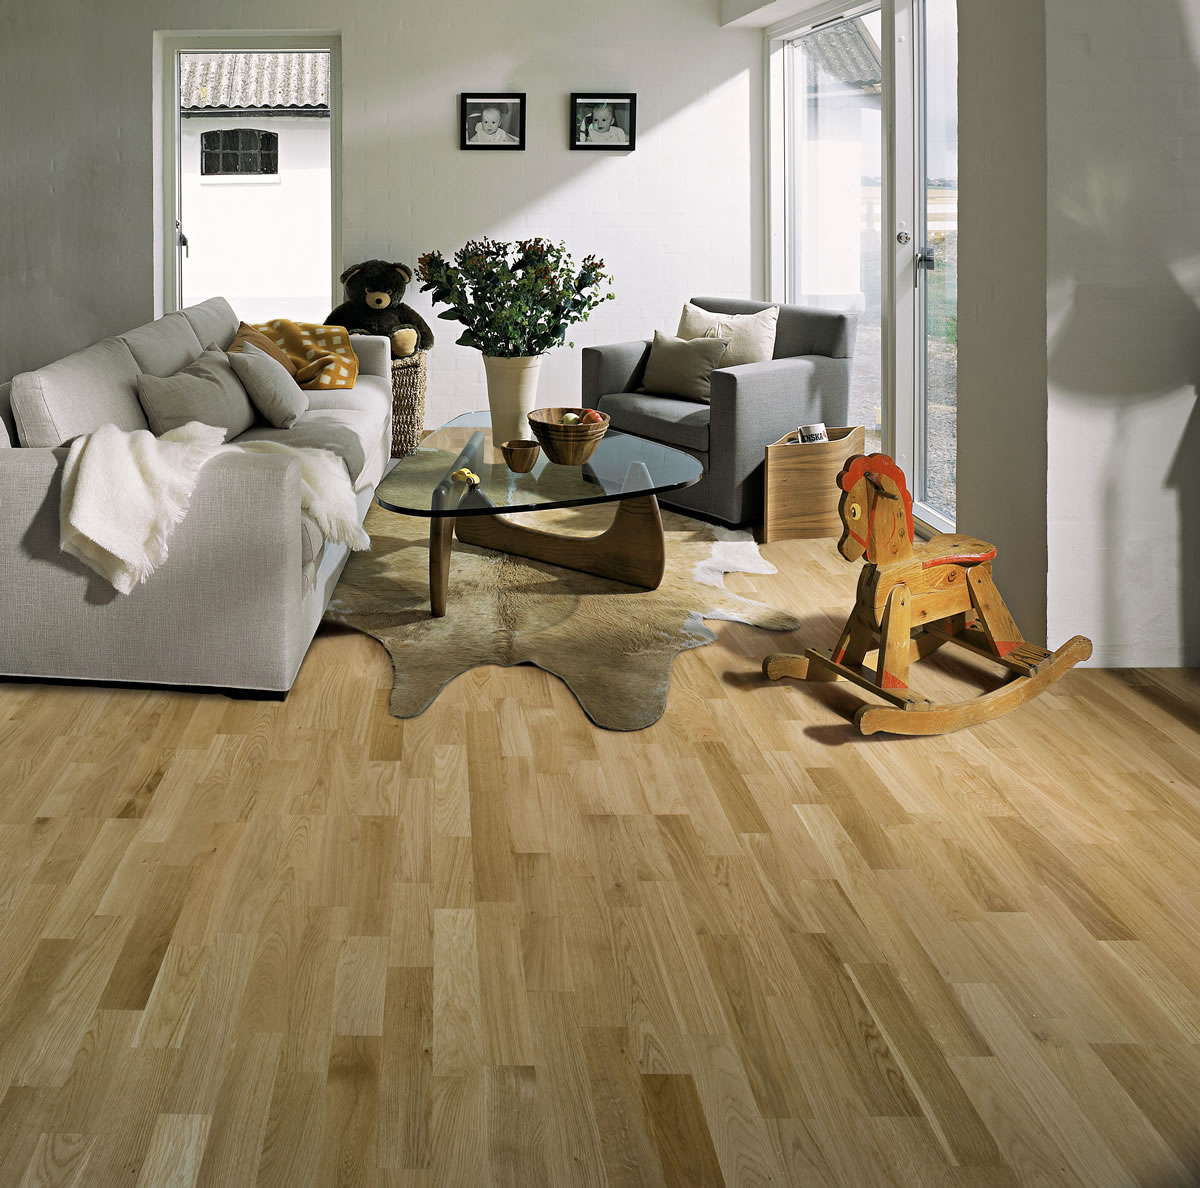 Kahrs oak lecco for Kahrs flooring